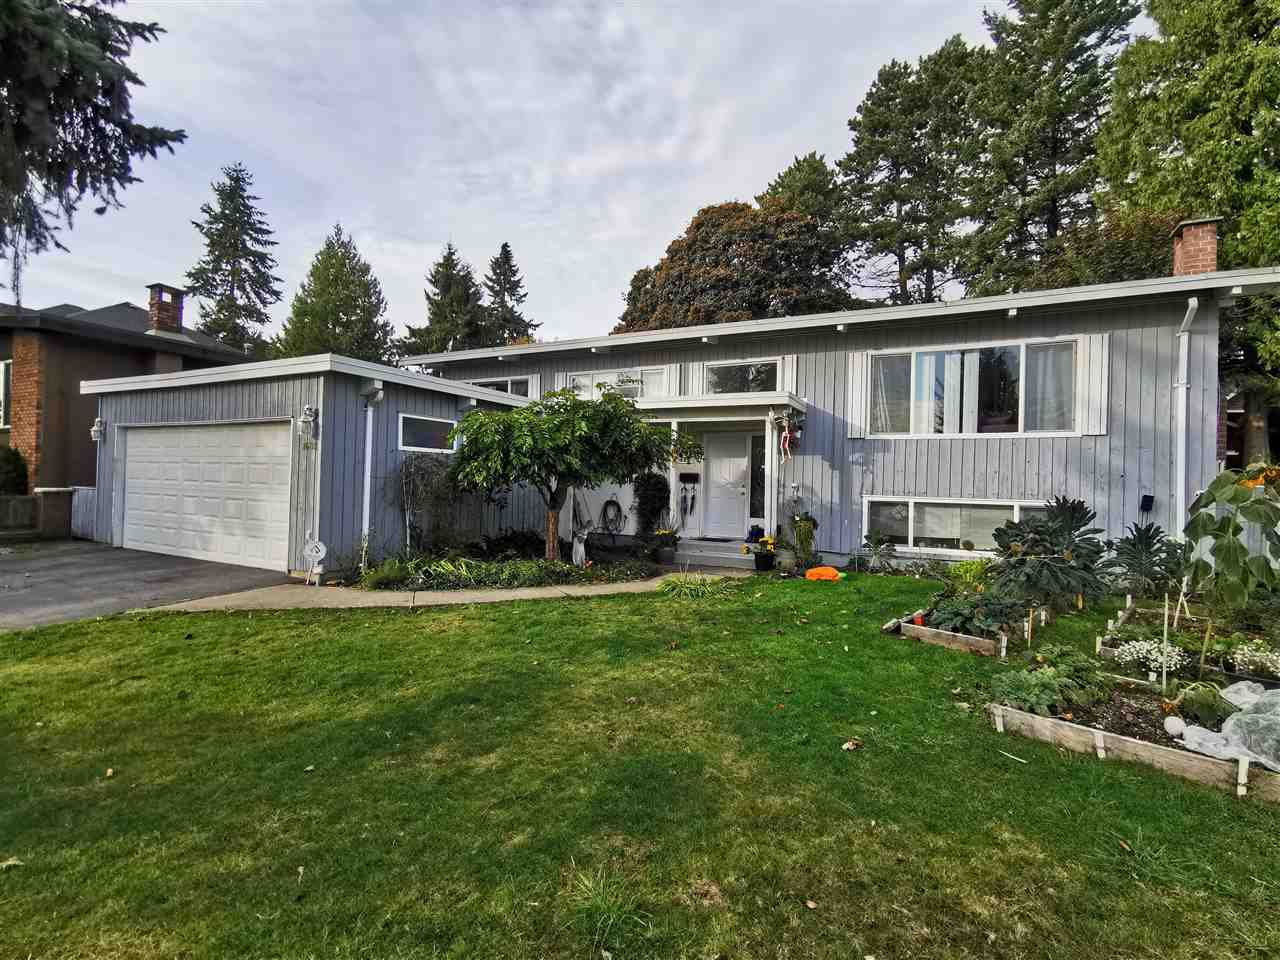 Main Photo: 1685 DANSEY AVENUE in Coquitlam: Central Coquitlam House for sale : MLS®# R2511920